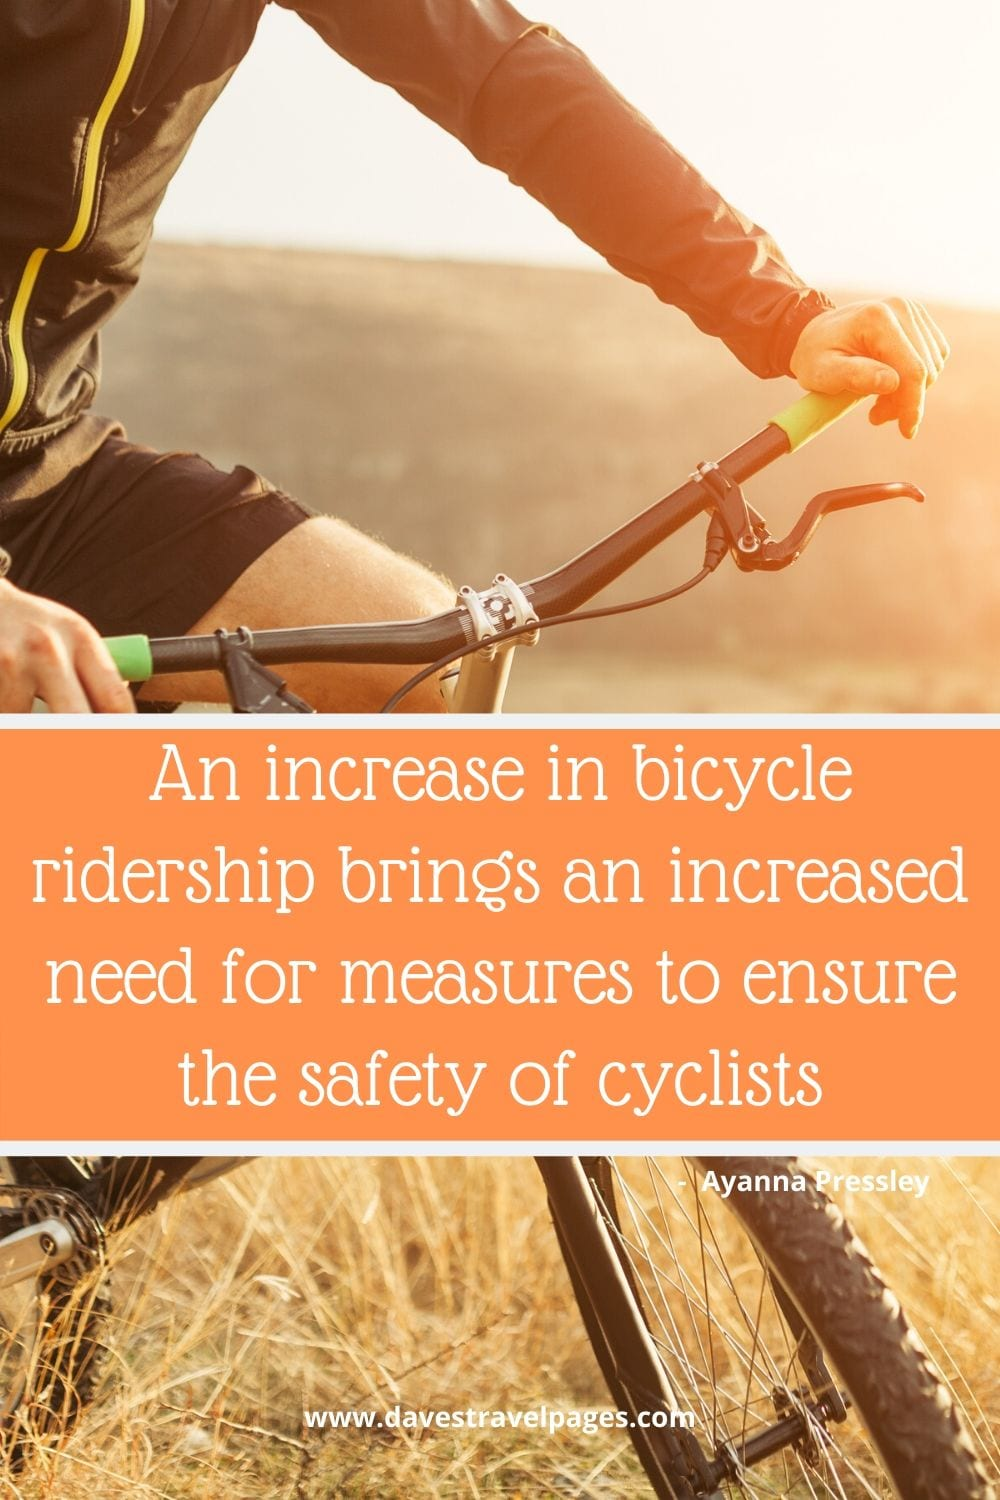 Quotes about cycling: An increase in bicycle ridership brings an increased need for measures to ensure the safety of cyclists. Ayanna Pressley